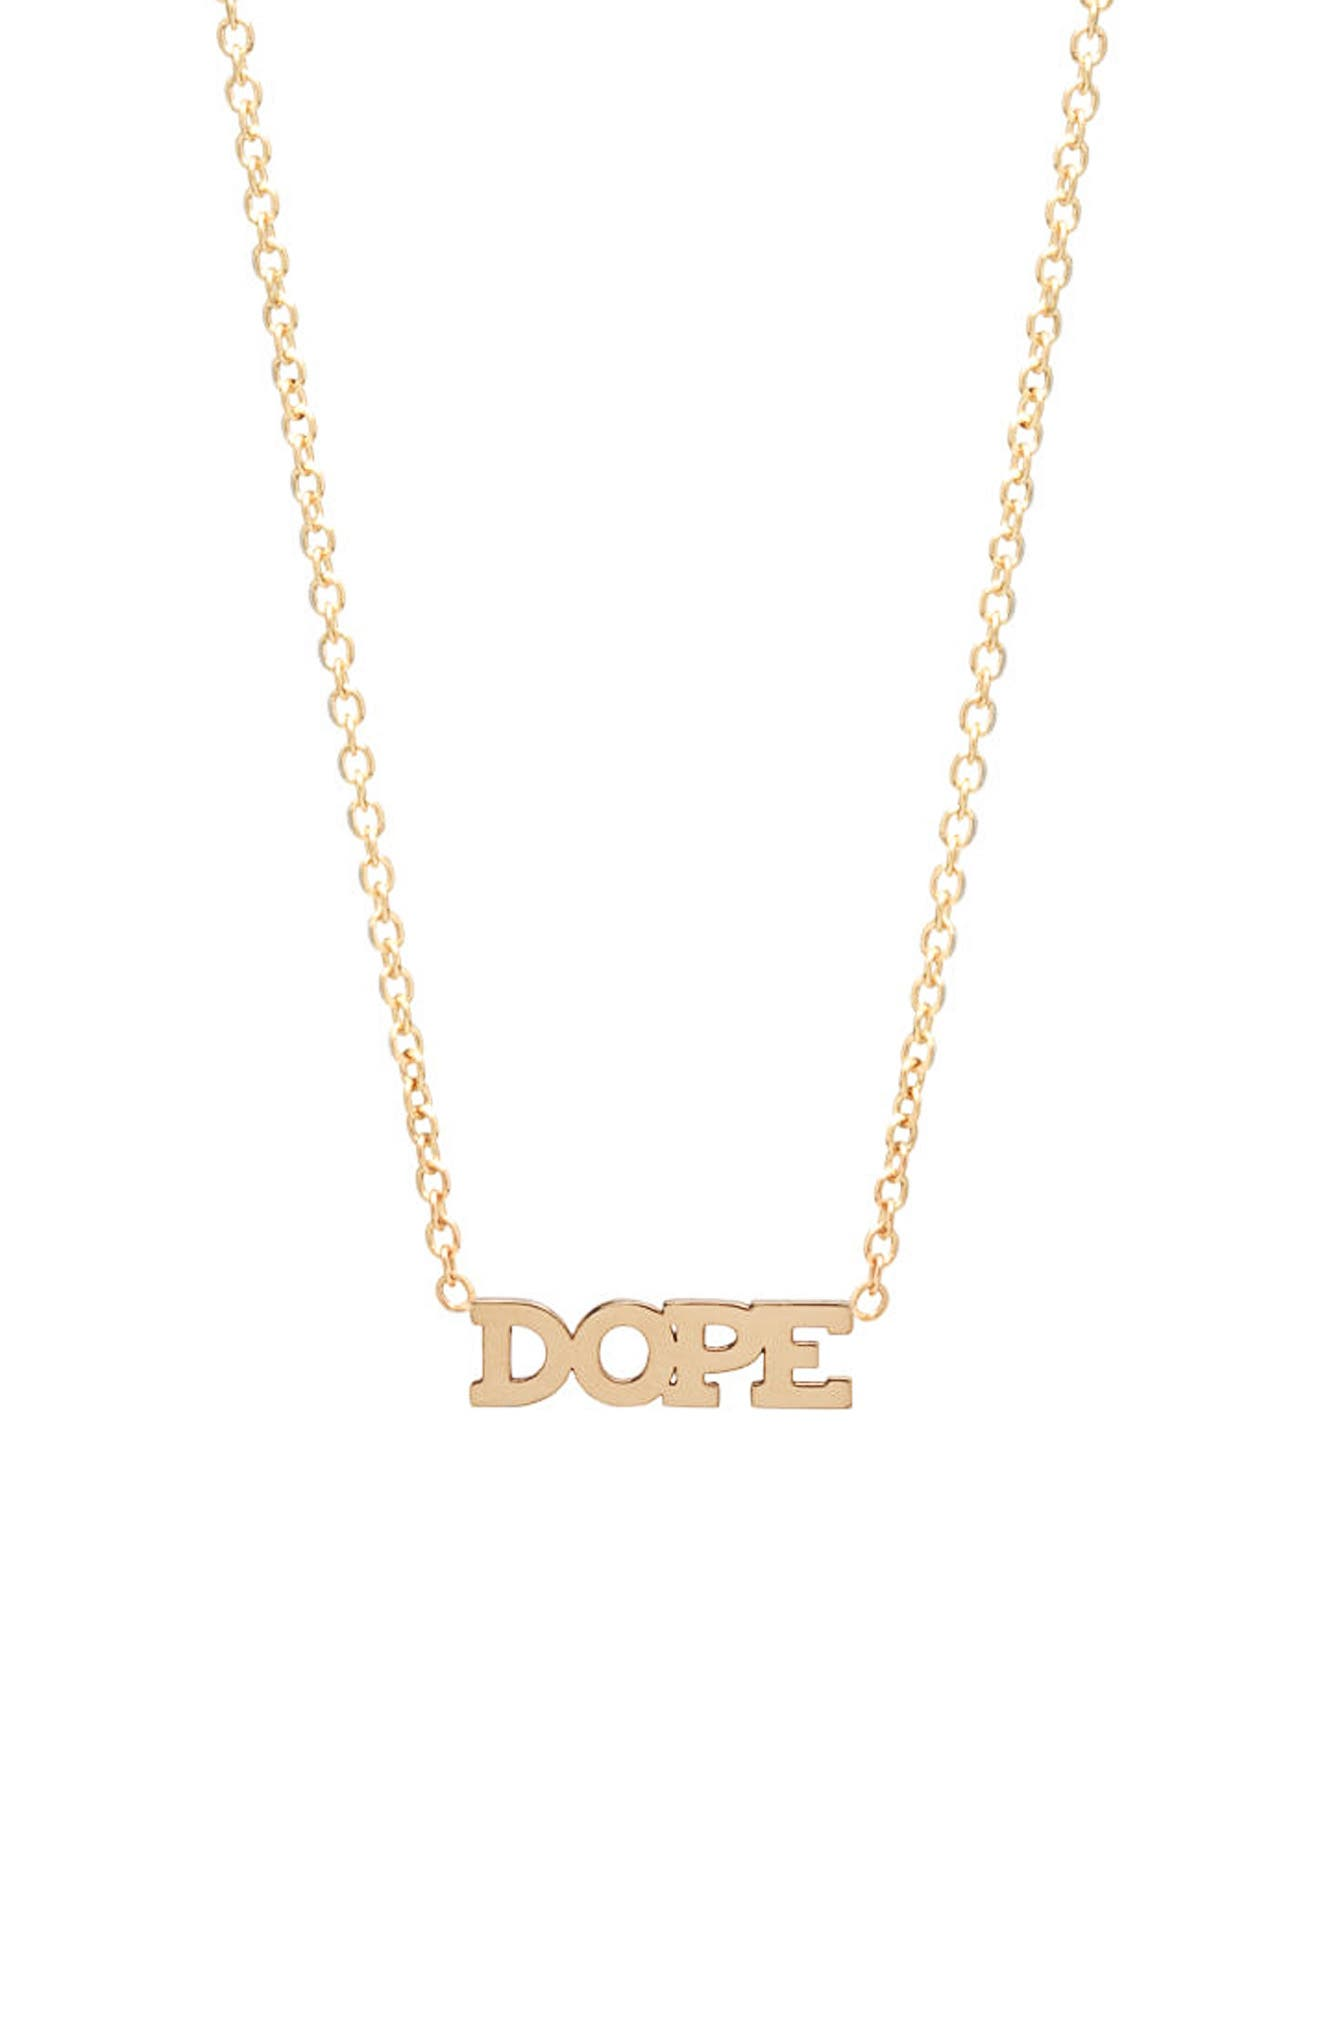 Itty Bitty Dope Pendant Necklace,                             Main thumbnail 1, color,                             YELLOW GOLD